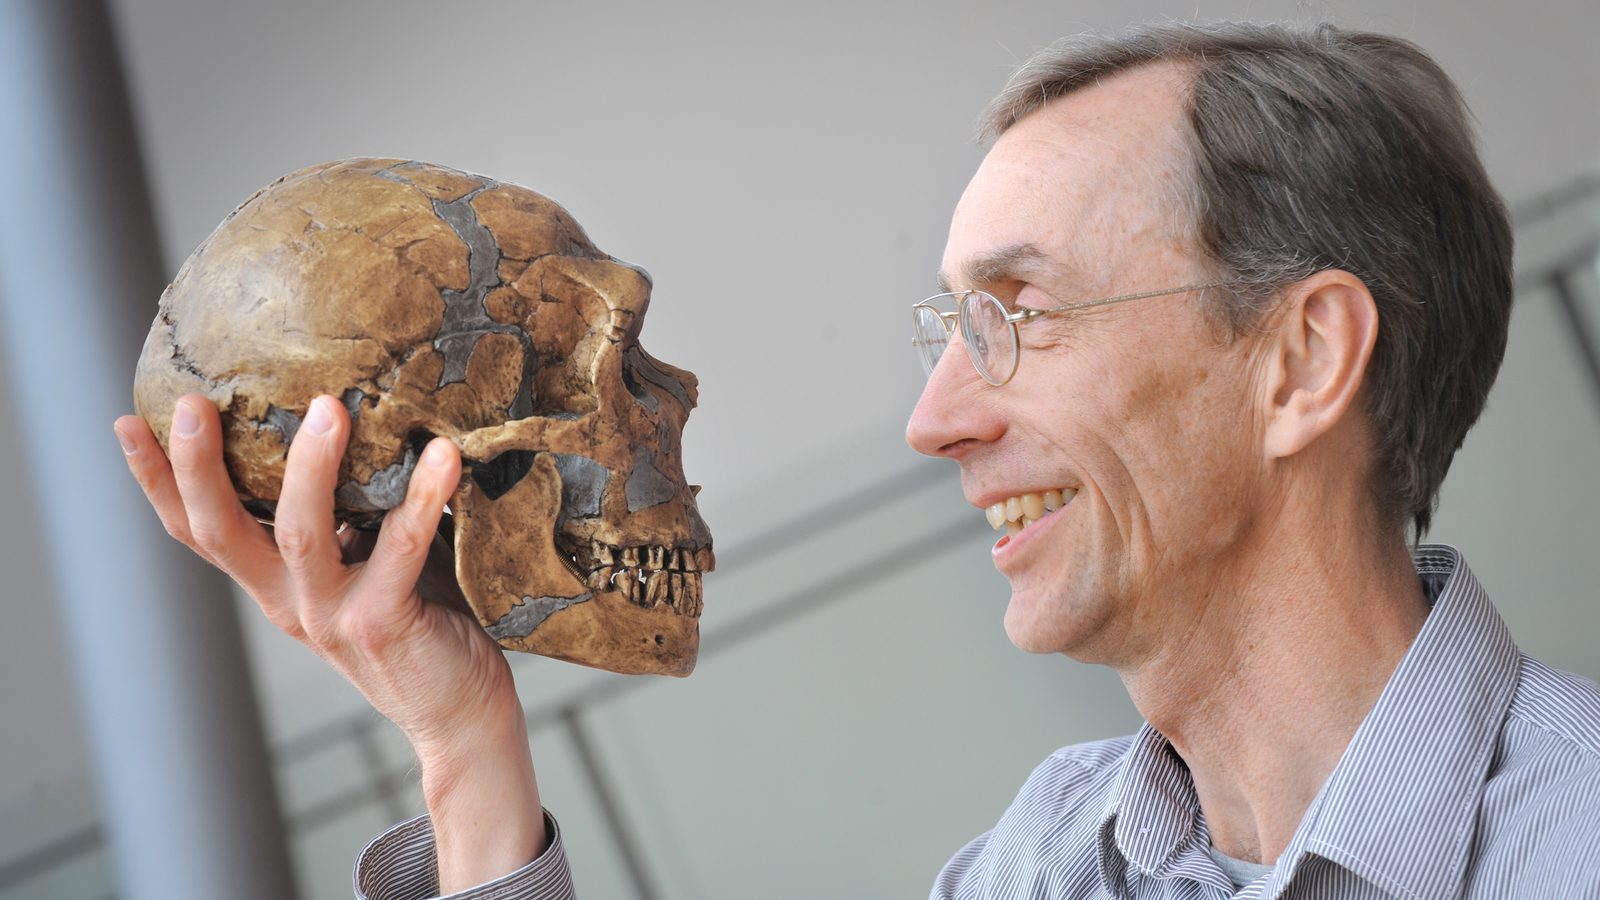 Svante Pääbo with a reconstructed Neanderthal skull